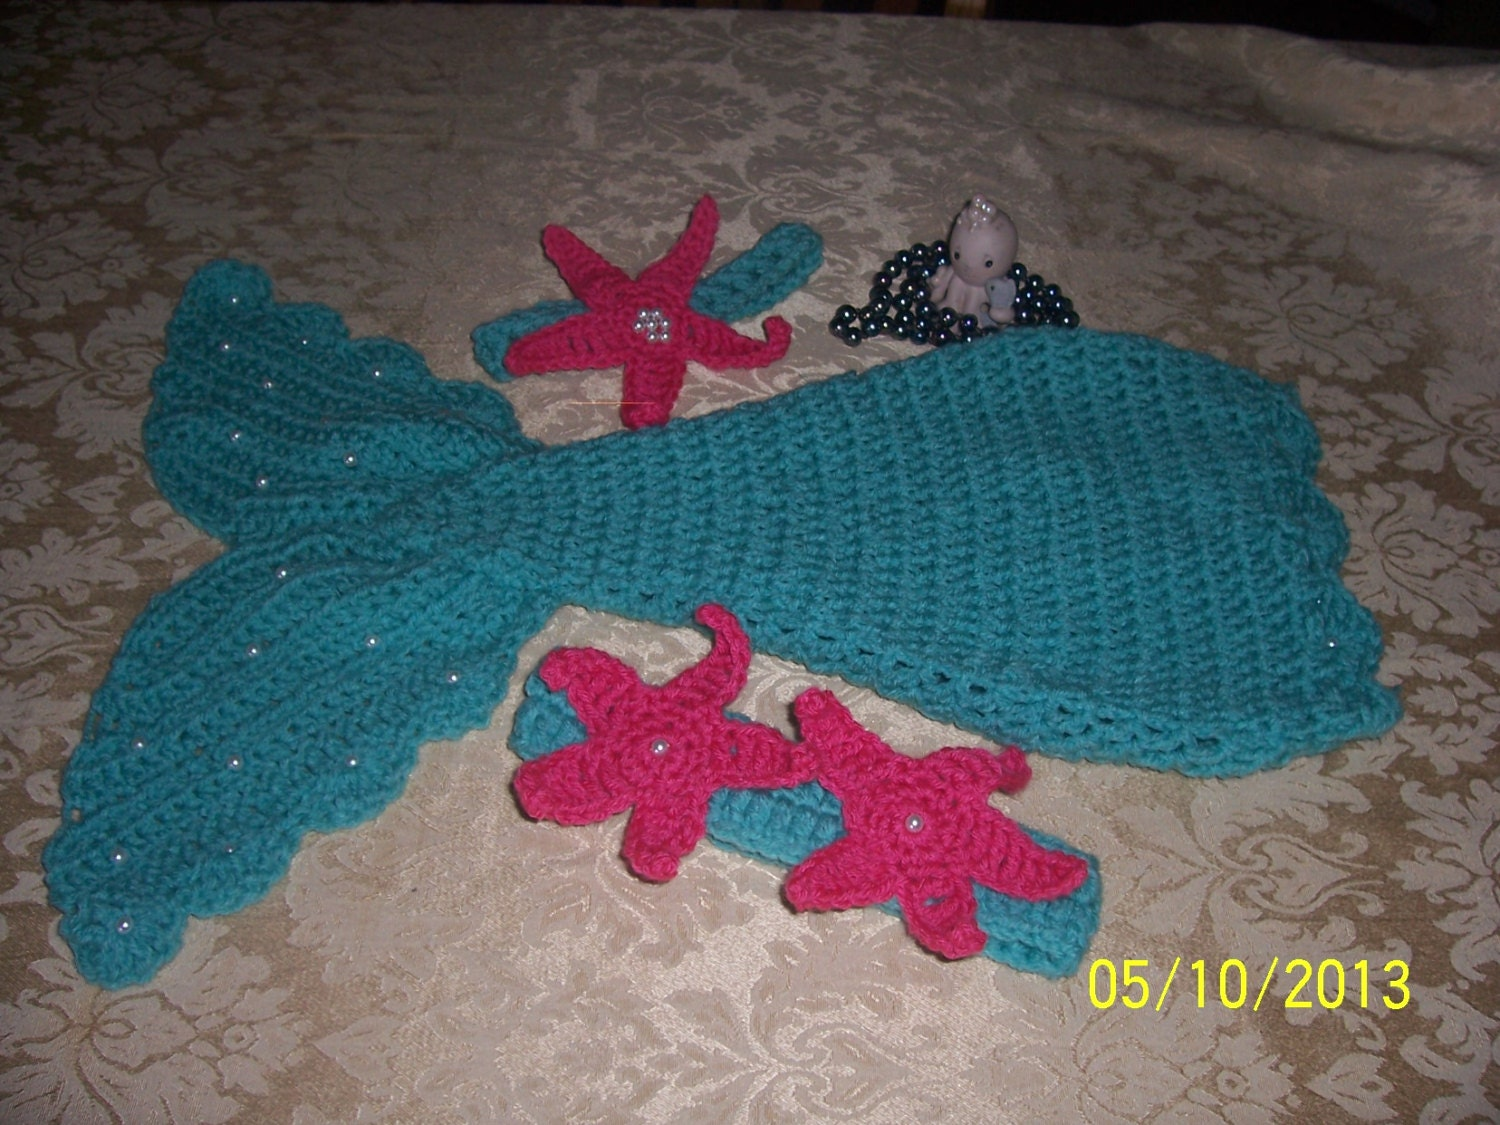 Free Crochet Amigurumi Mermaid Pattern : Crochet baby mermaid pattern includes starfish and shell top and